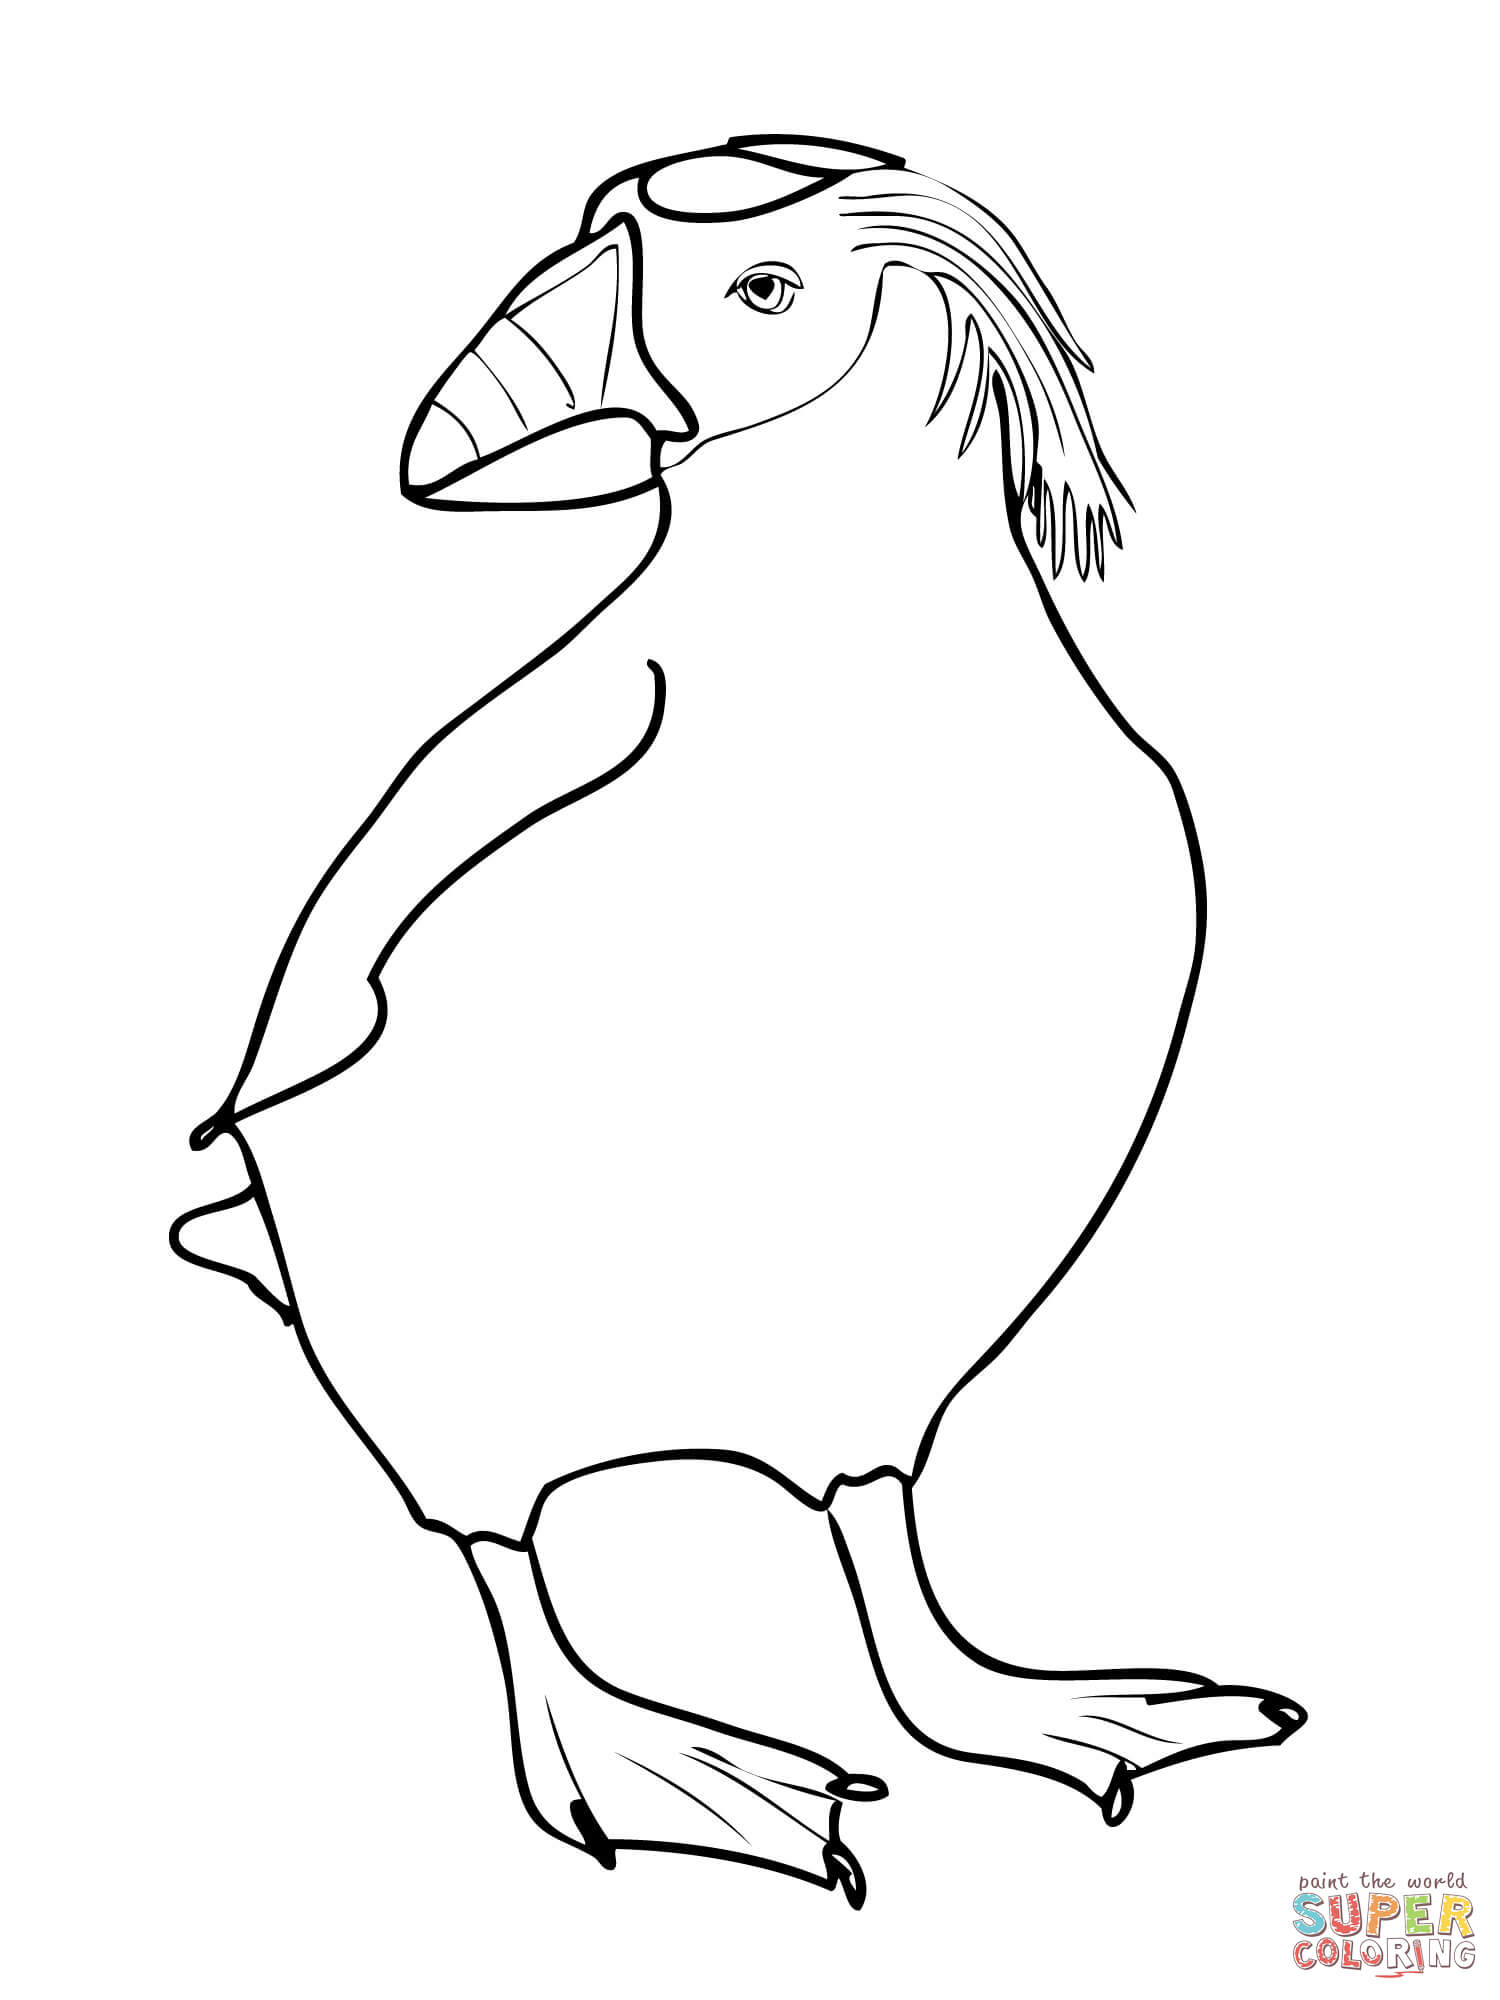 Adult Beauty Puffin Coloring Page Gallery Images best puffin coloring page az pages gallery images